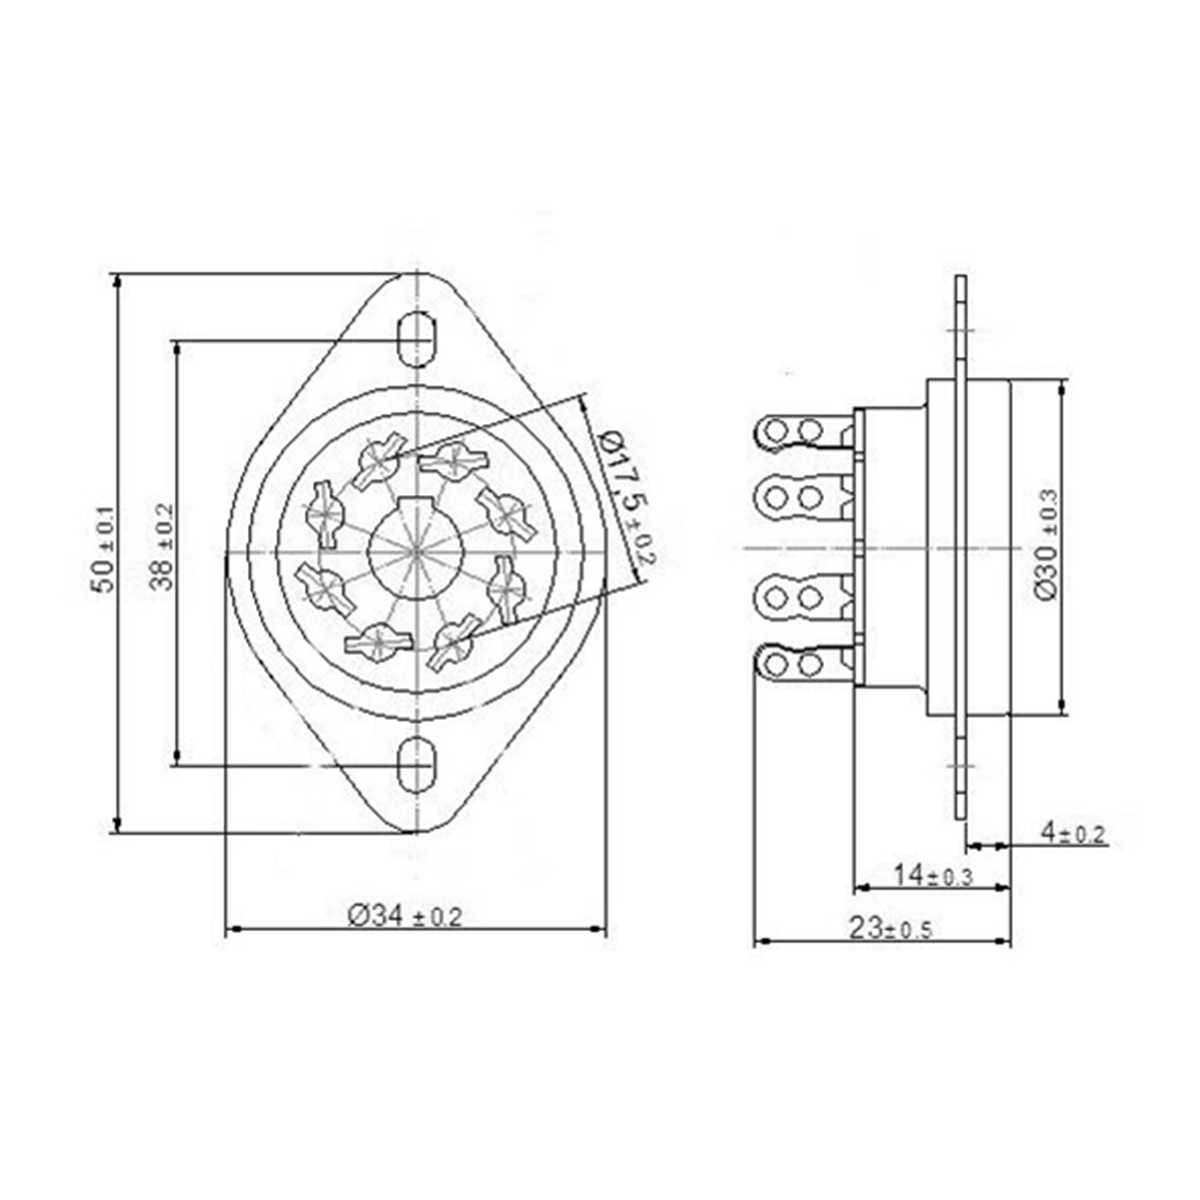 8 pin chassis mount vacuum tube sockets kt88 6l6 el34 belton replacement accessories [ 1200 x 1200 Pixel ]